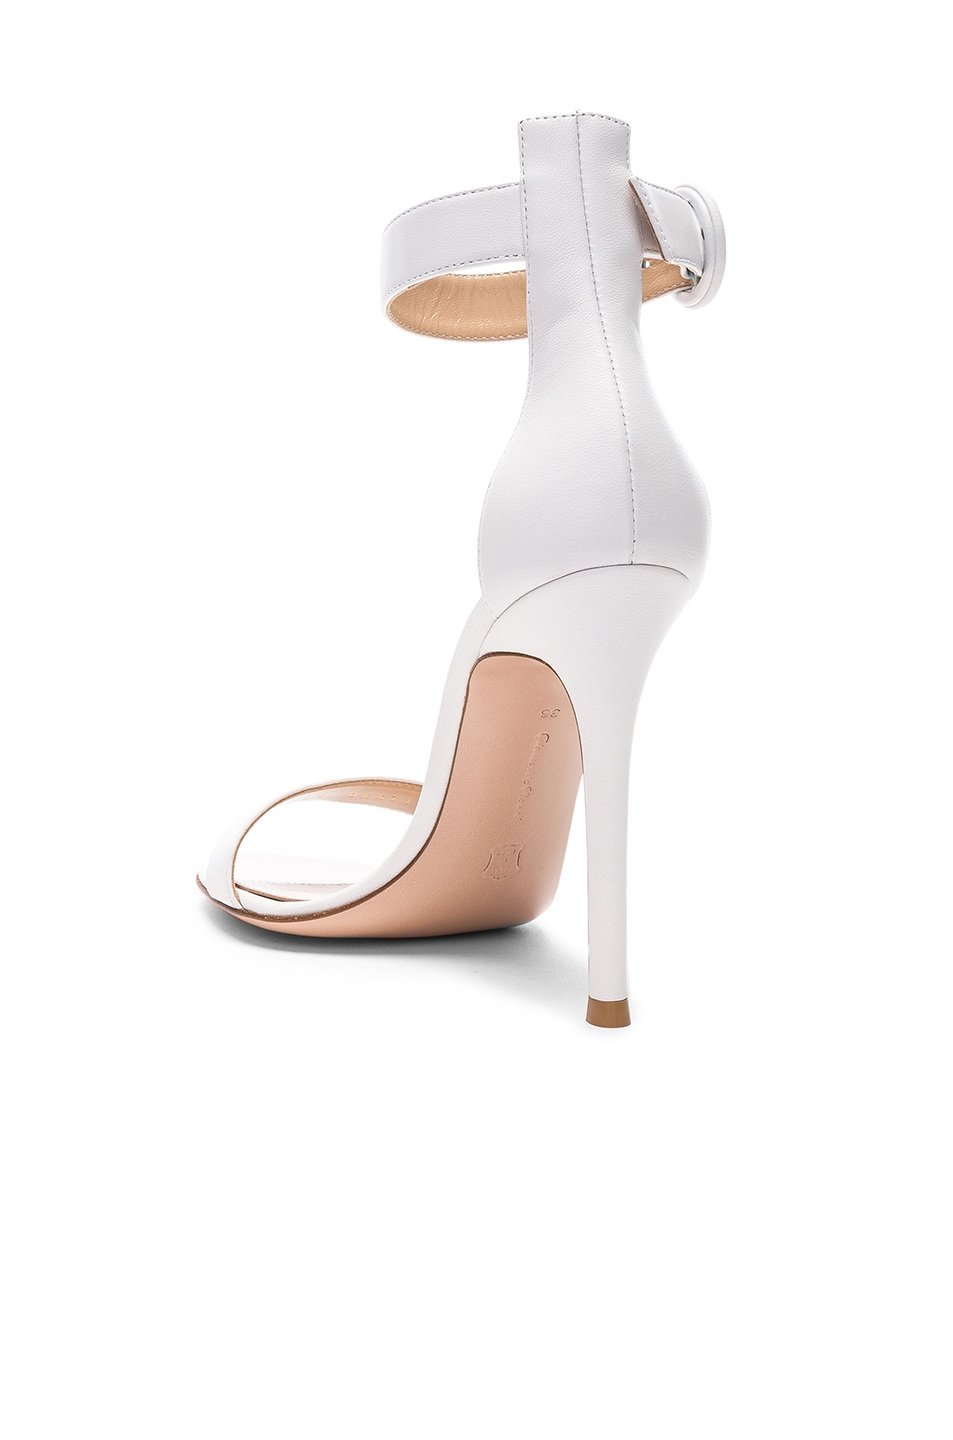 Image 3 of Gianvito Rossi Leather Portofino Heels in White